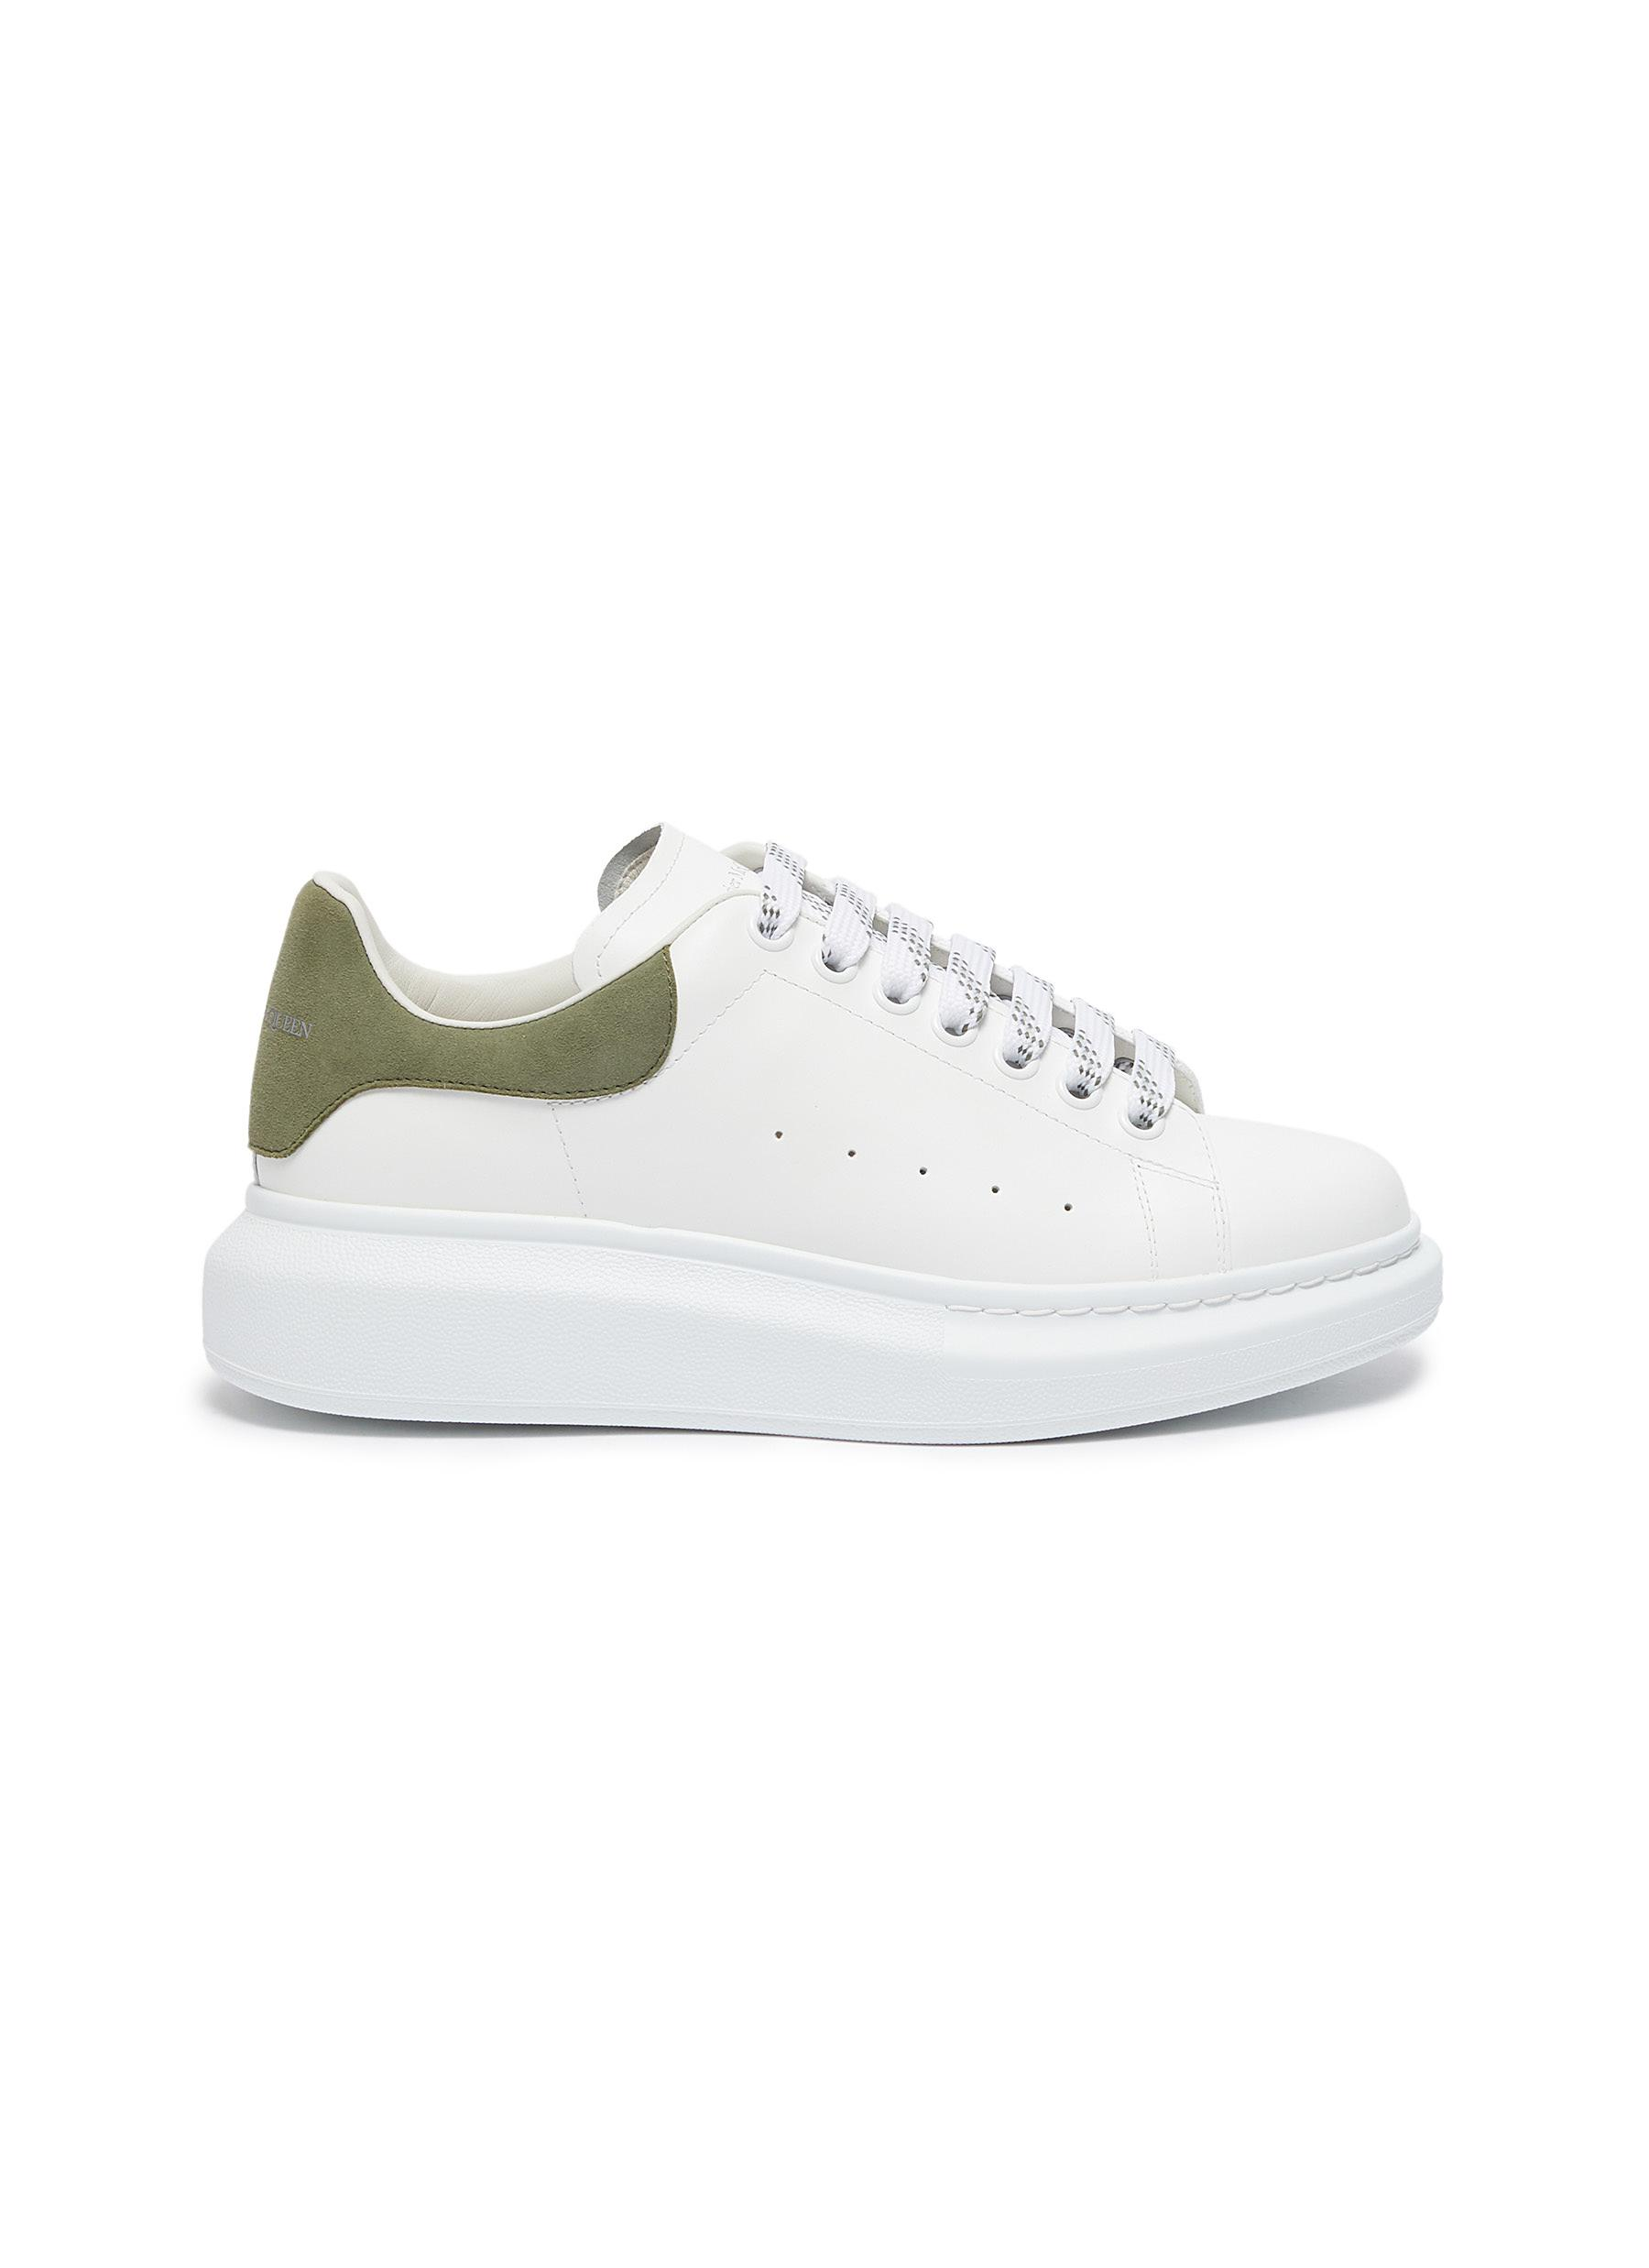 Oversized Sneakers' in Leather with Suede Heel Tab